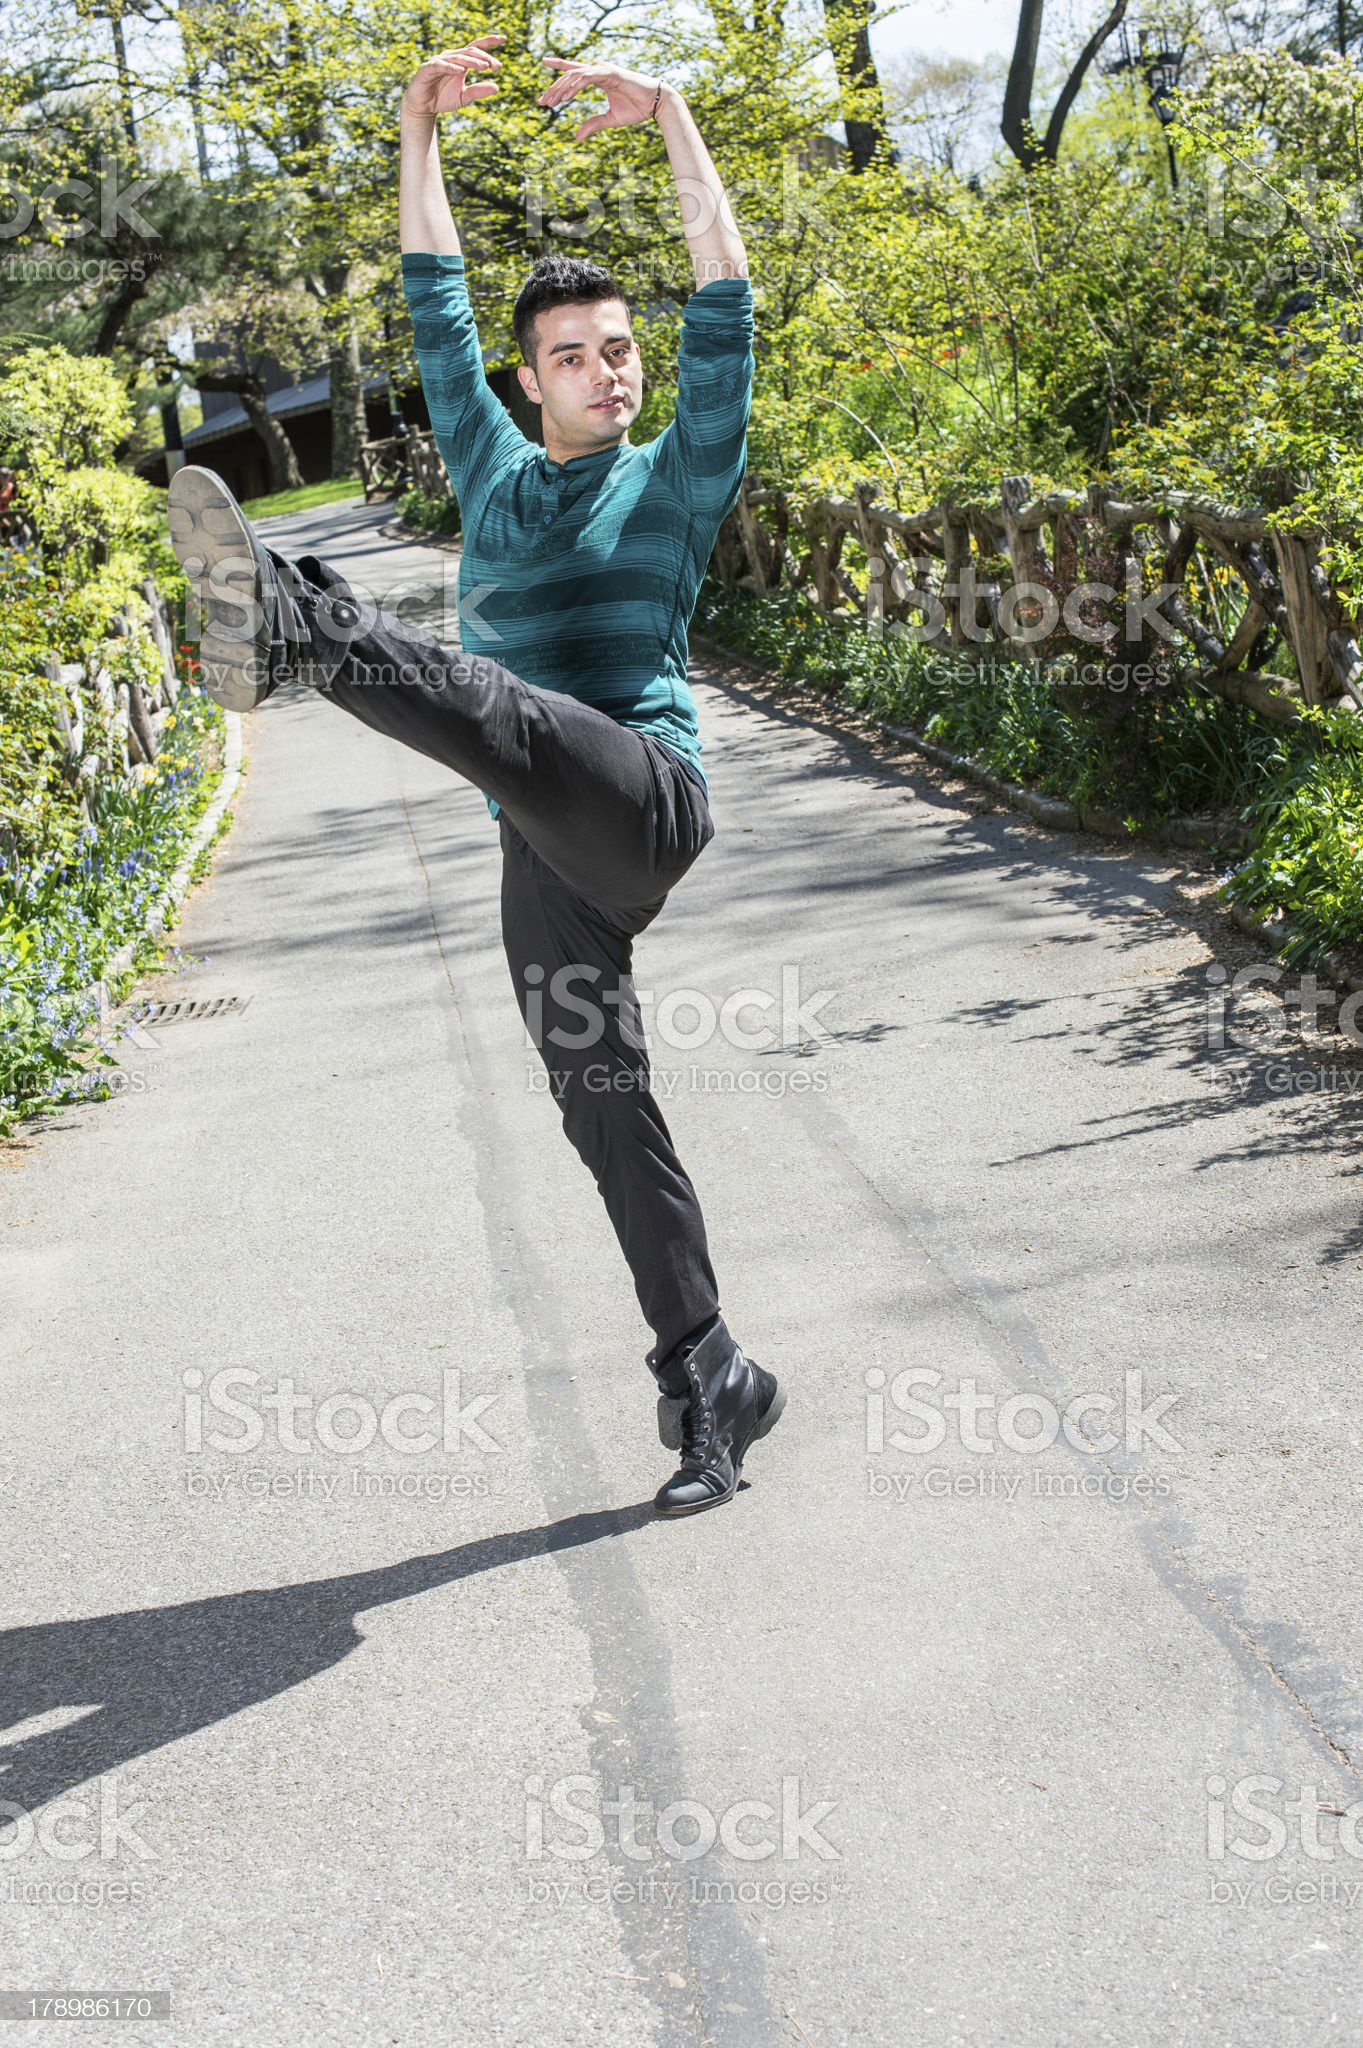 Dancing in Park royalty-free stock photo